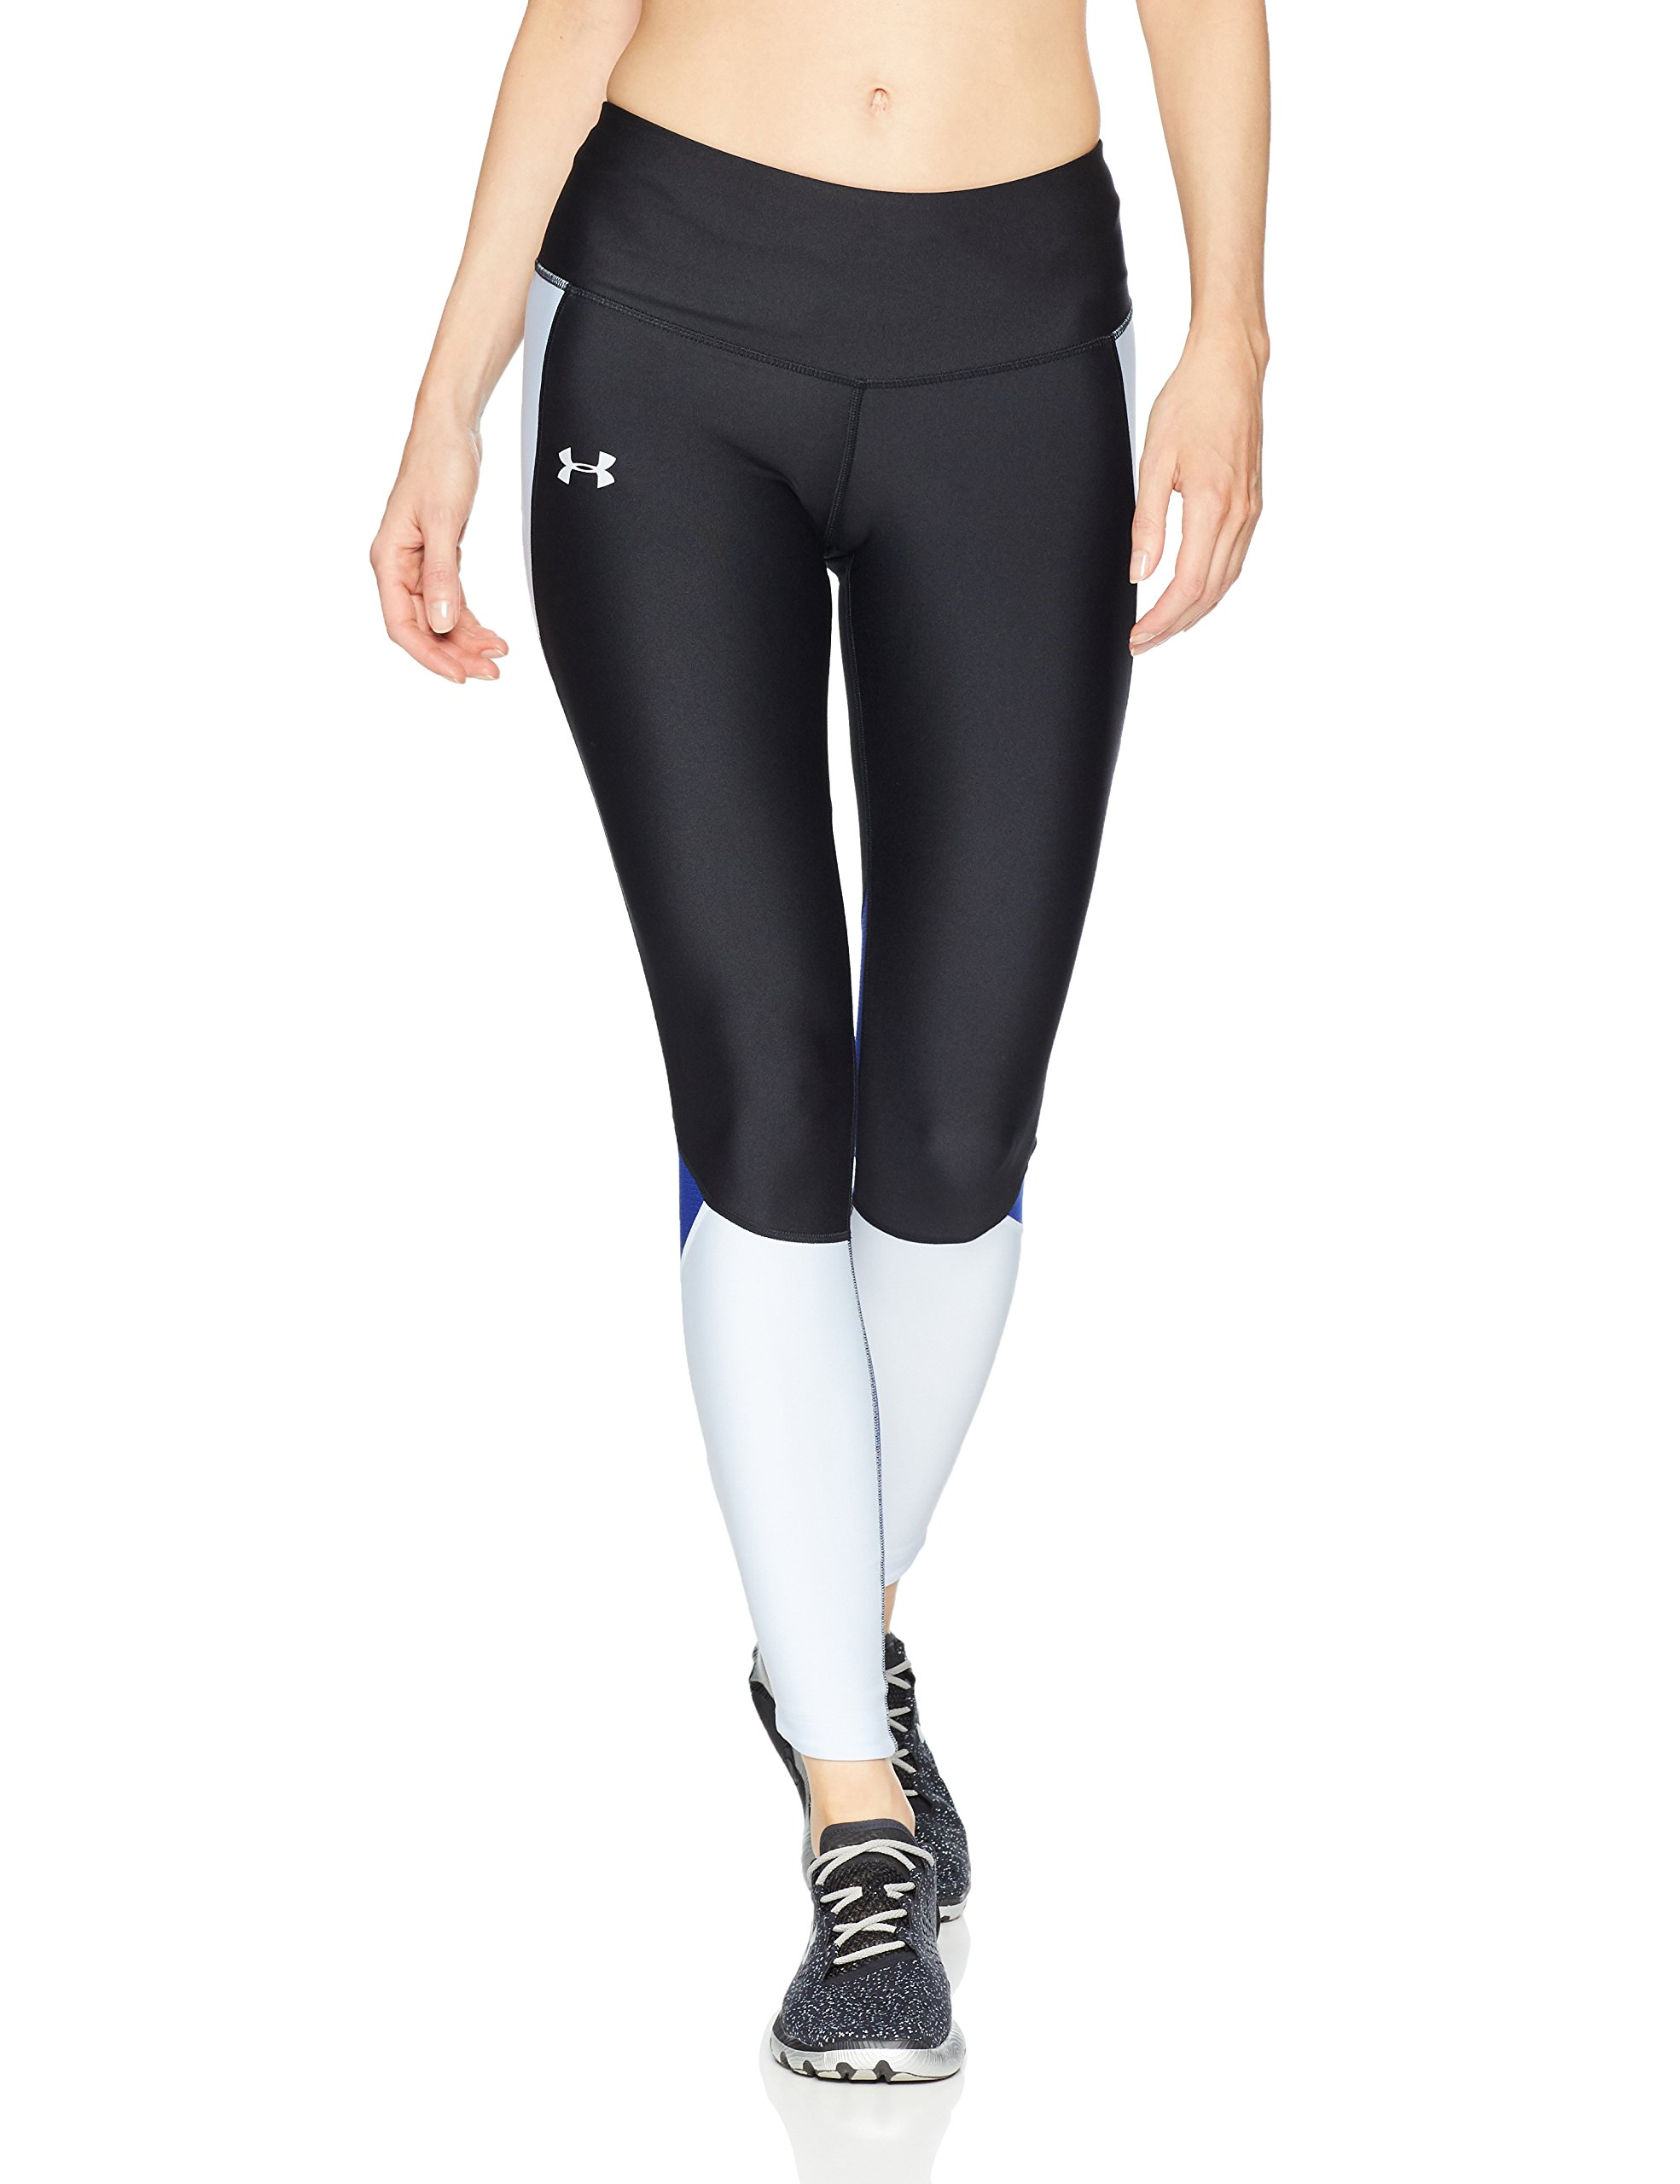 Under Armour Women's Armour Fly Fast Tights, Black (003)/Reflective, Small